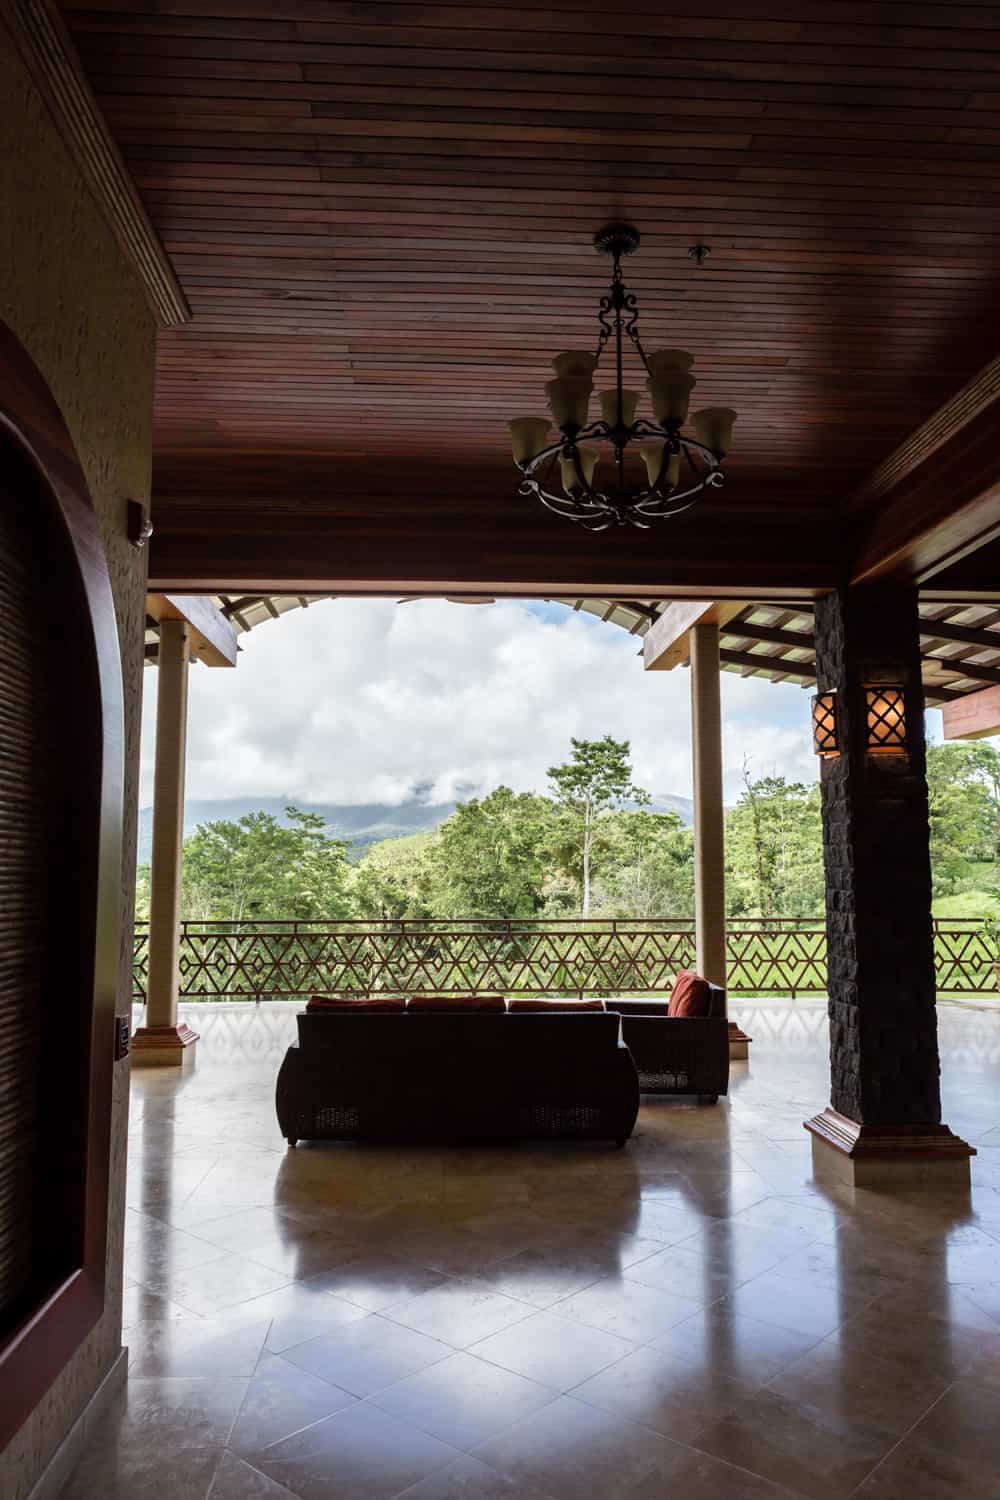 Under the covered area of the Aracari Terrace facing the terrace area for a wedding ceremony.